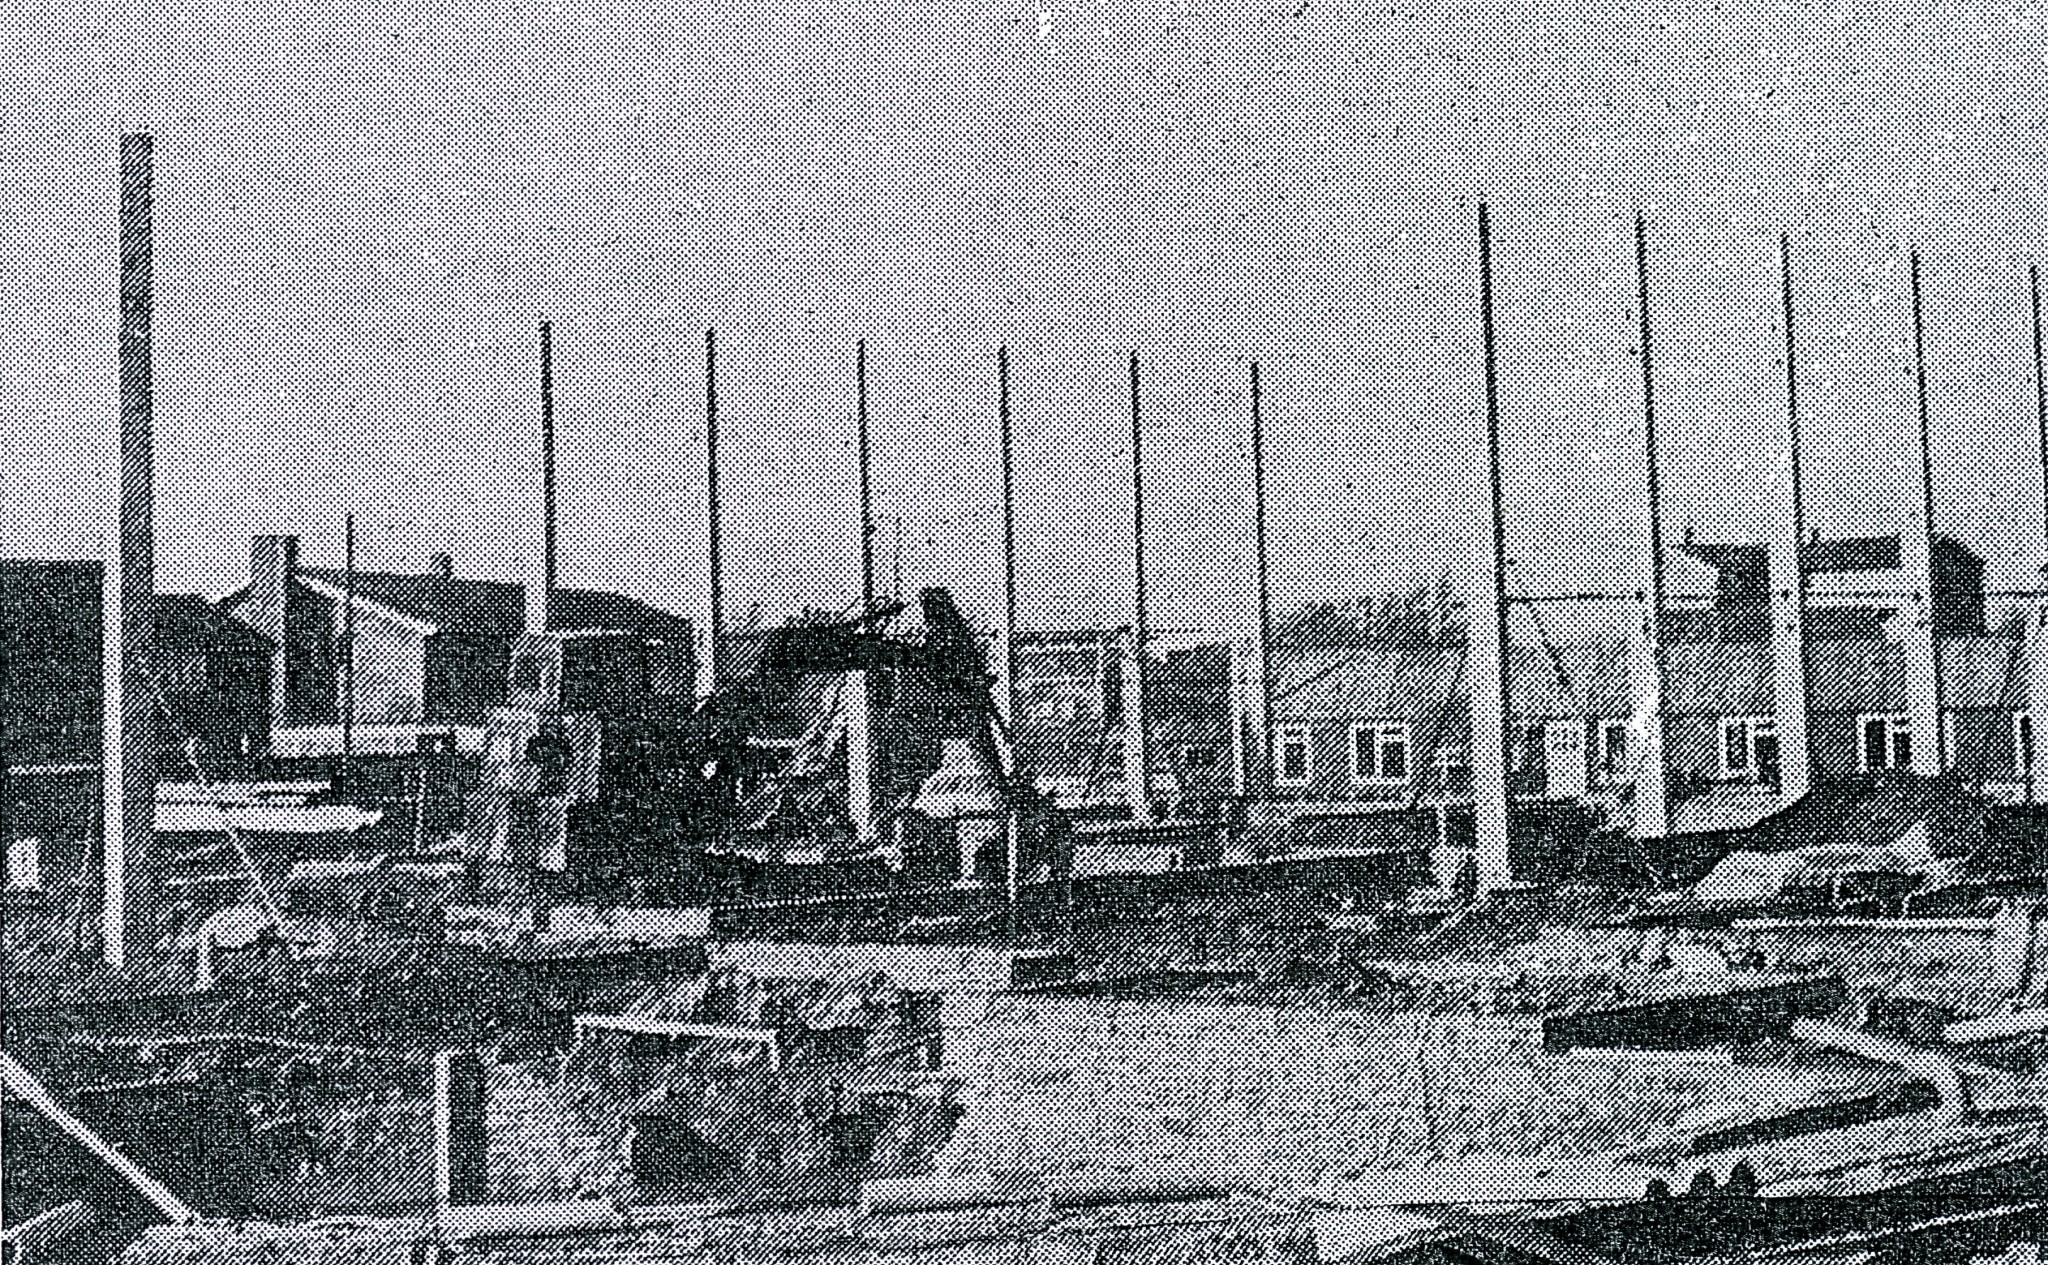 Lord Grey Academy in 1973 under construction